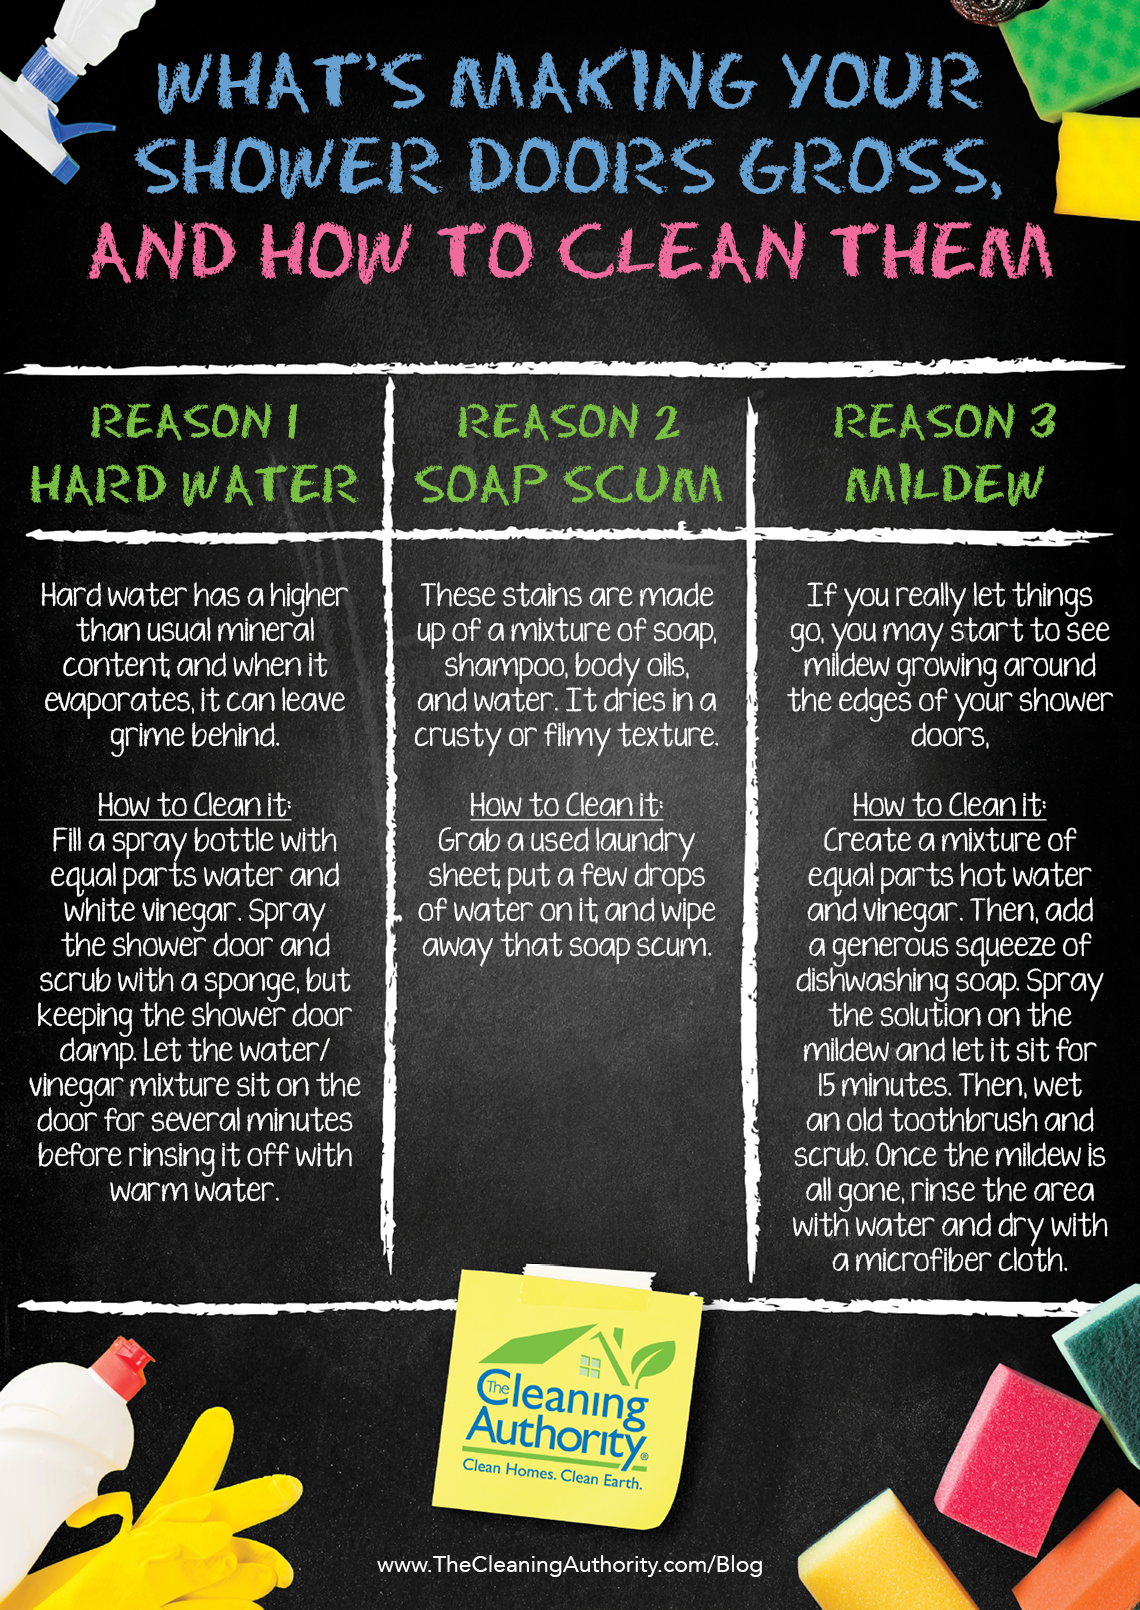 How to clean grimy shower doors infographic